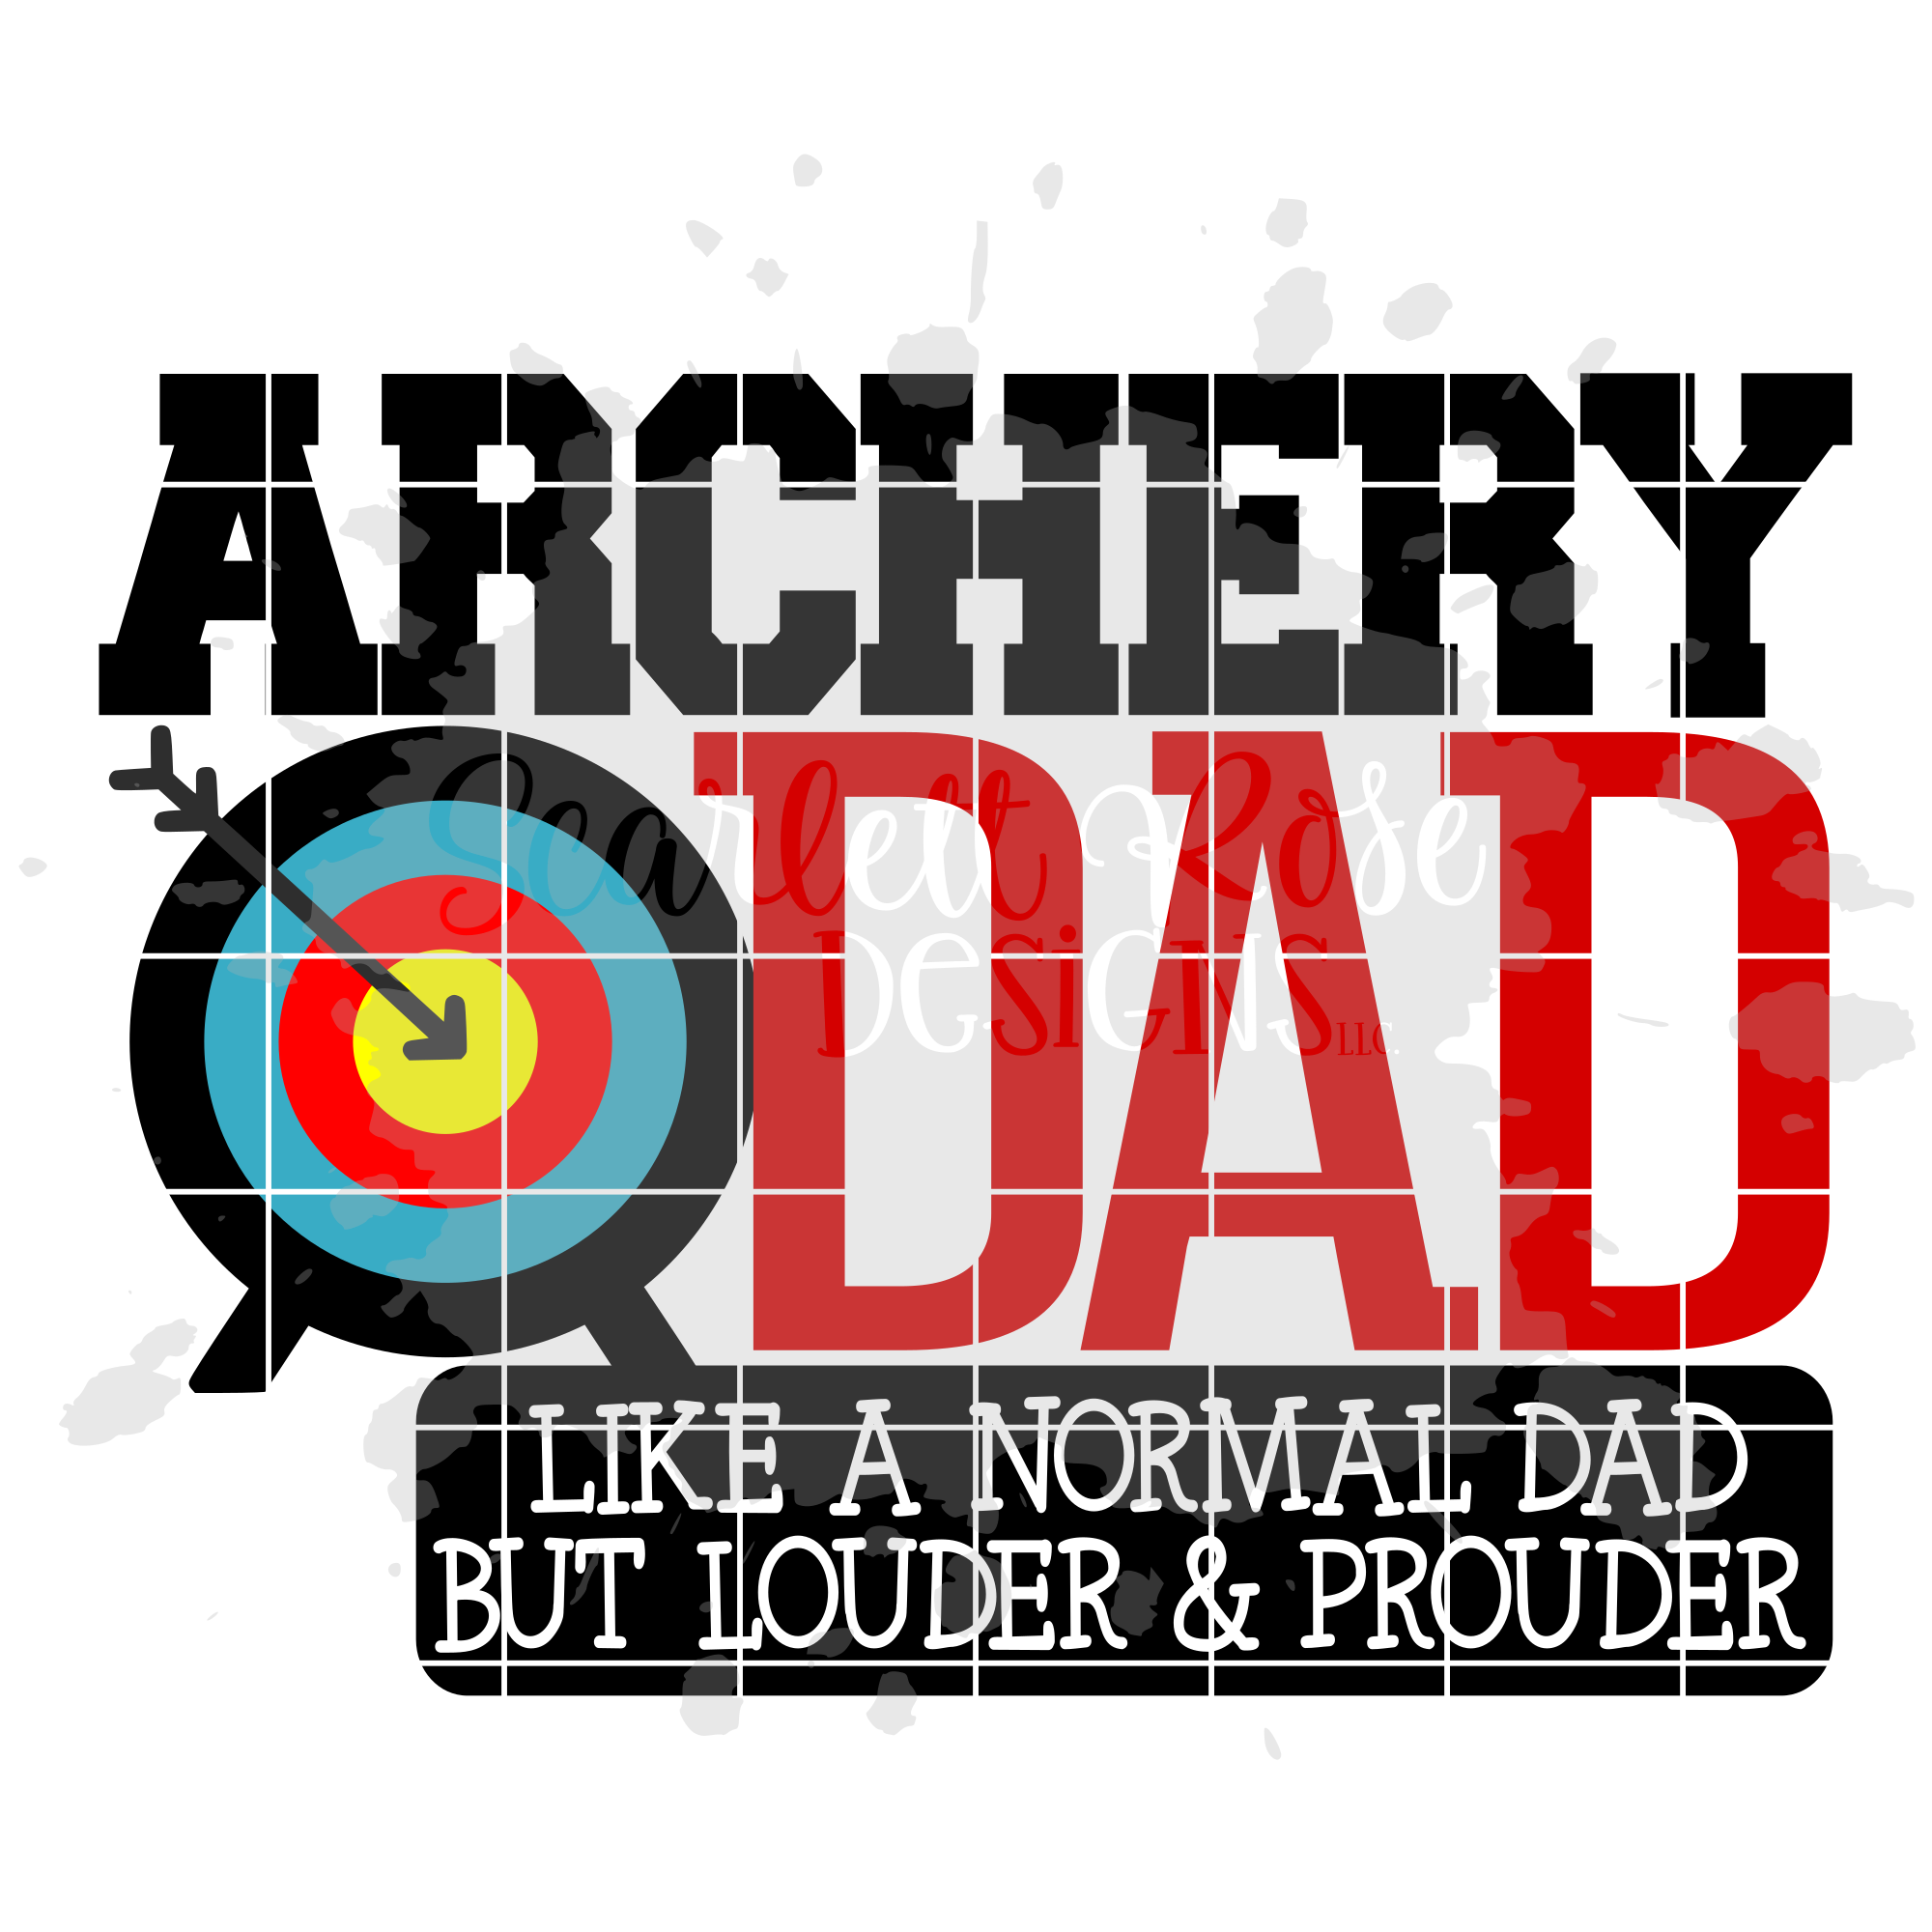 Archery Dad - Loud and Proud SVG example image 2